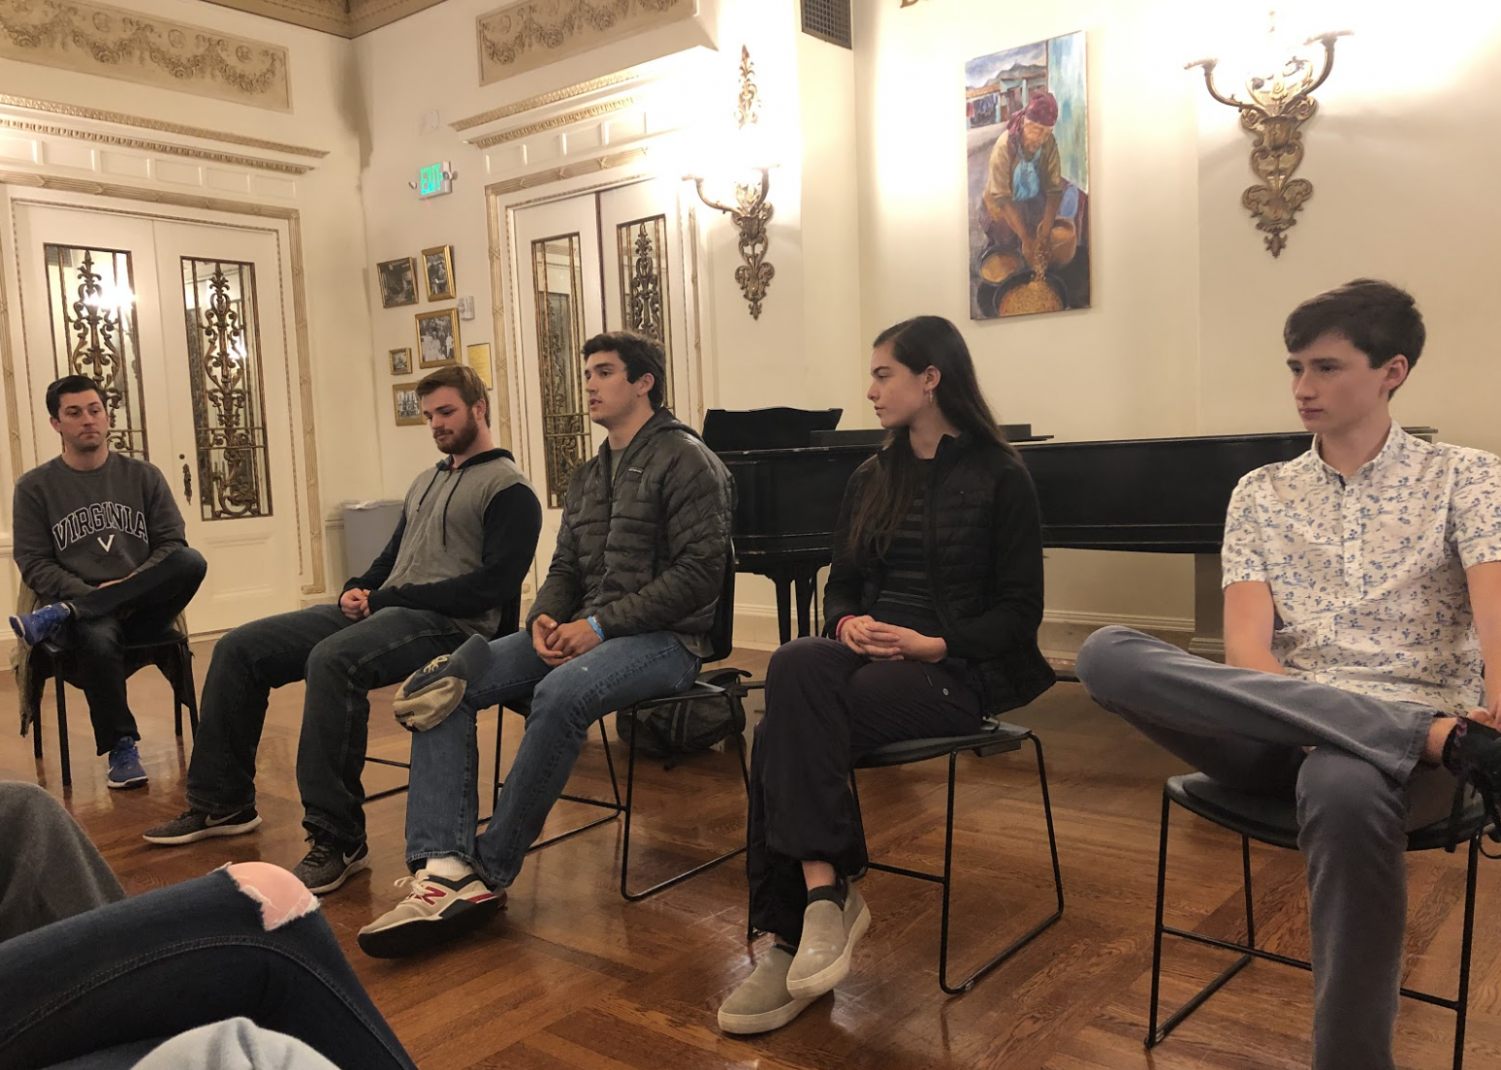 Seniors Brian Mhatre, Connor McCusker, and Jake Martin and junior Charlotte Acra speak about their beliefs and experiences at Menlo during the diversity of thought panel discussion. Staff photo: Samantha Stevens.